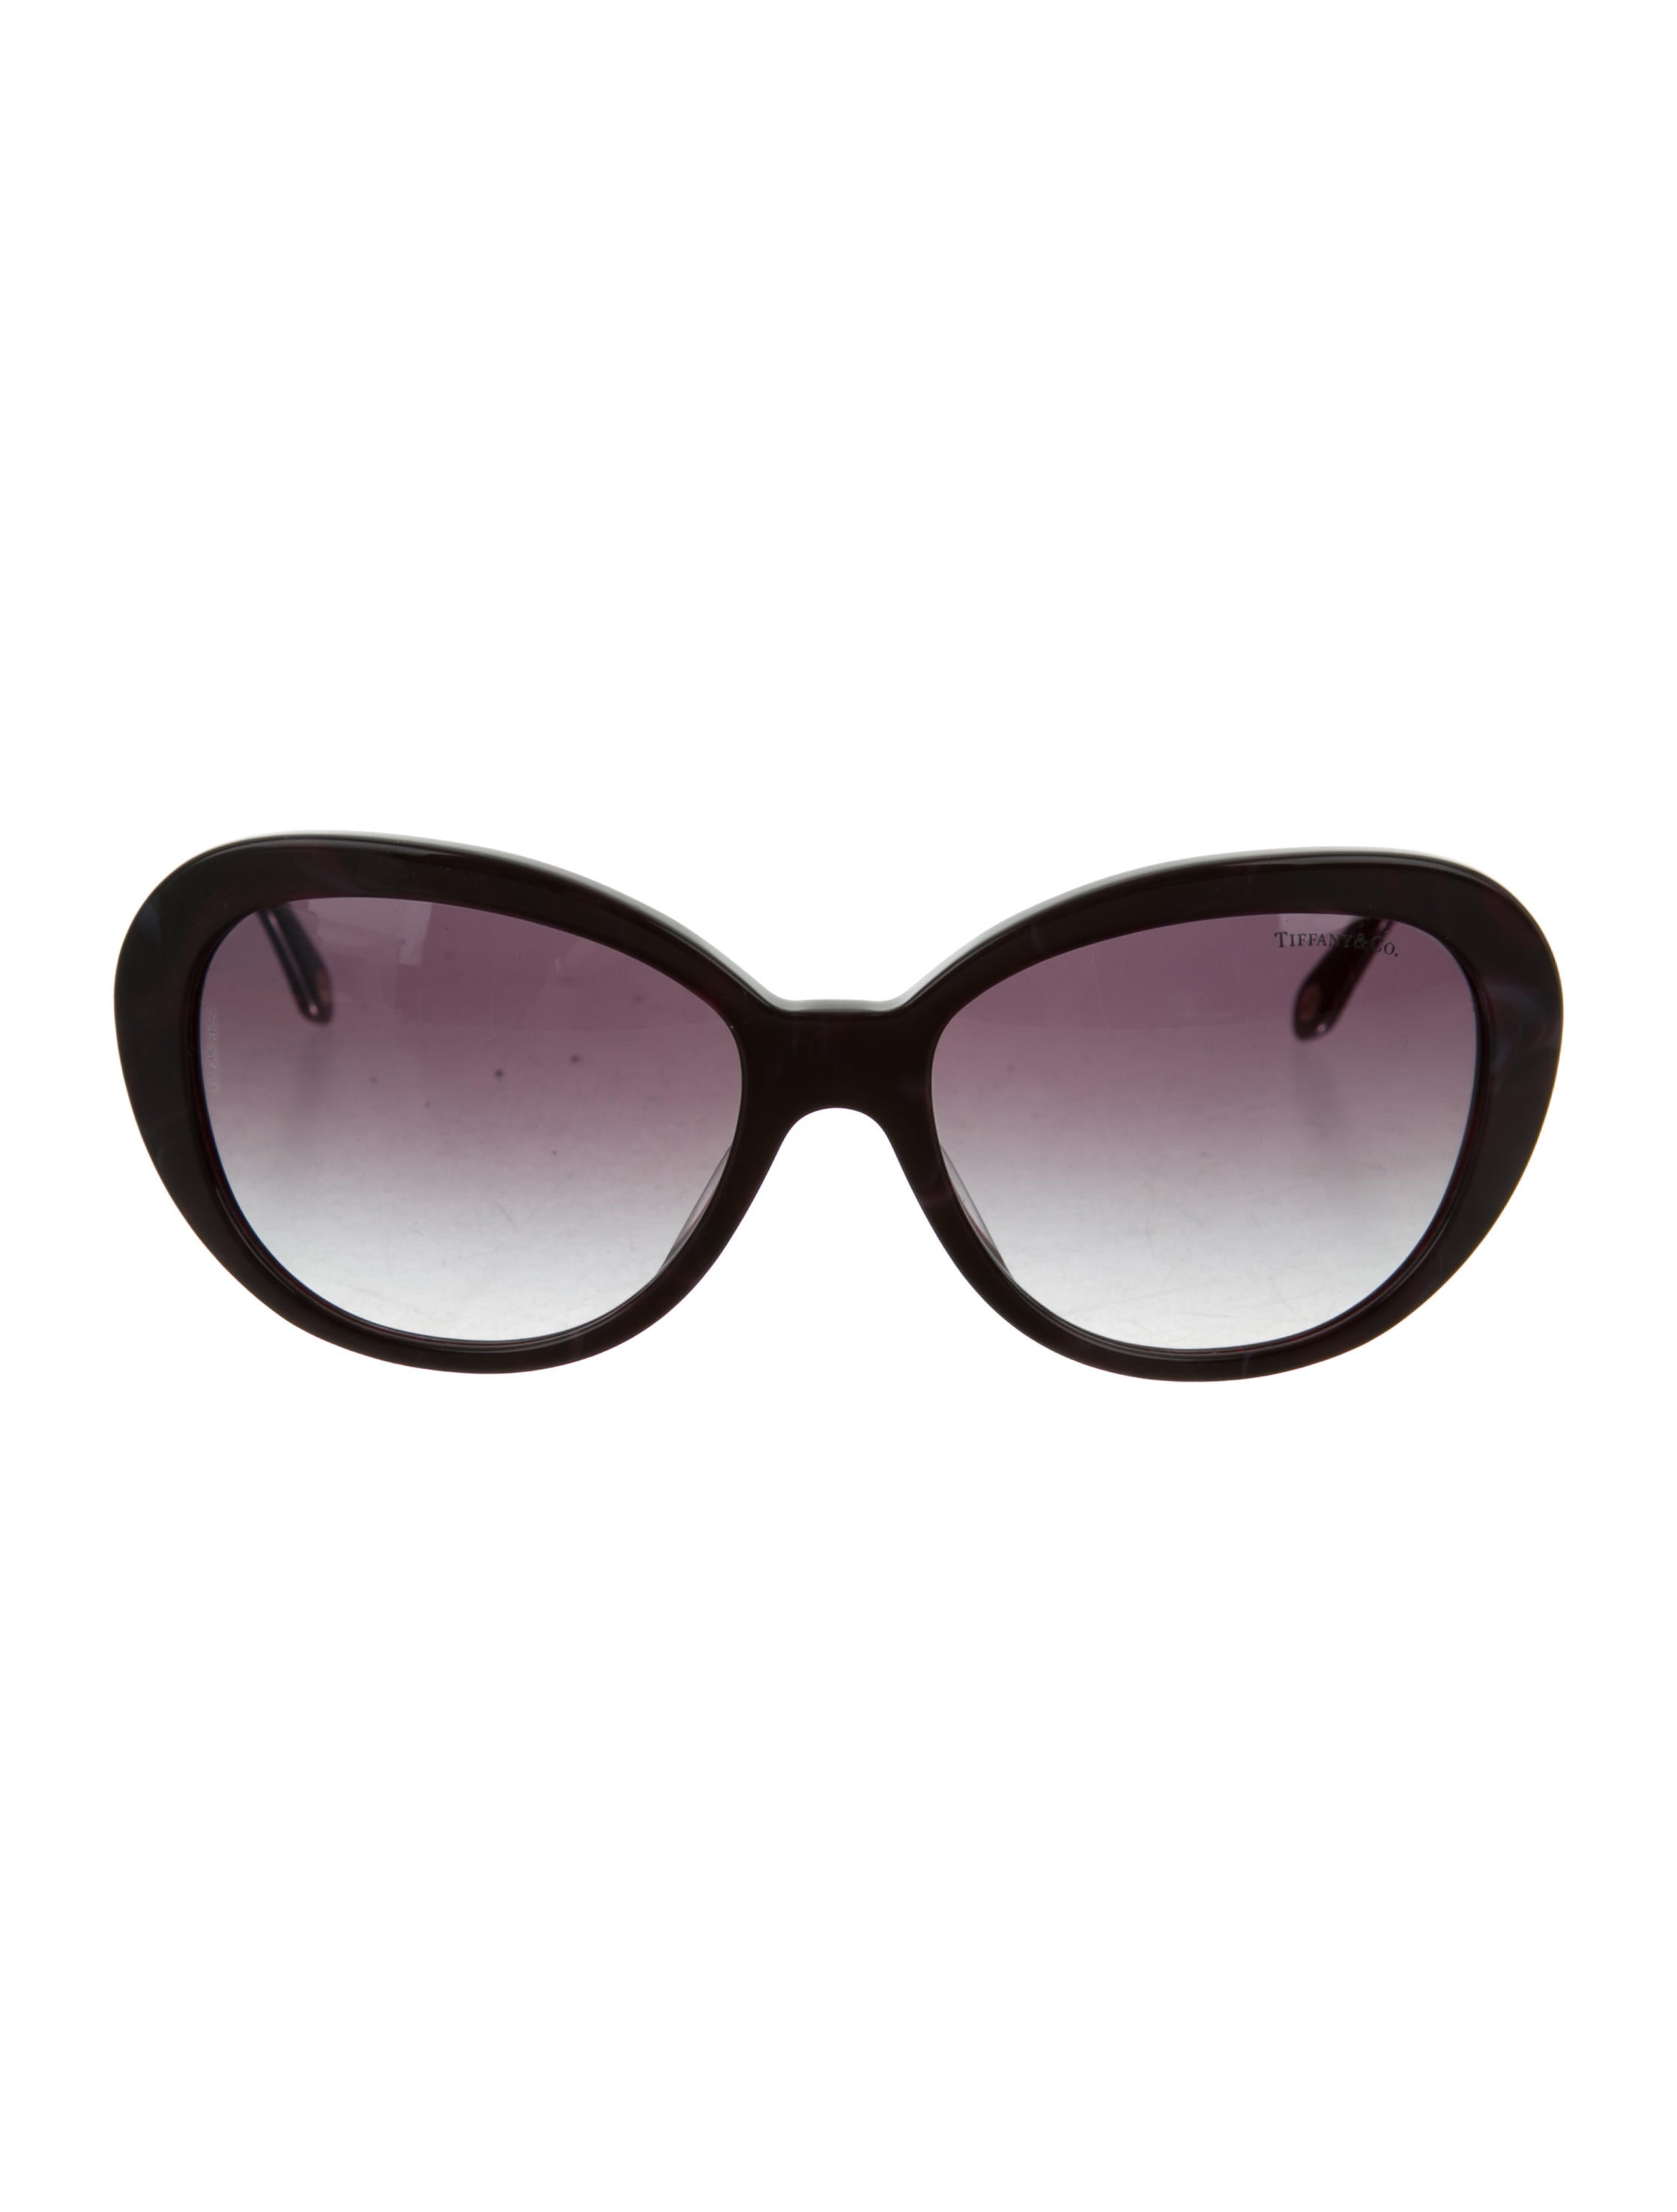 987d045c738 Tiffany Round Sunglasses - Bitterroot Public Library